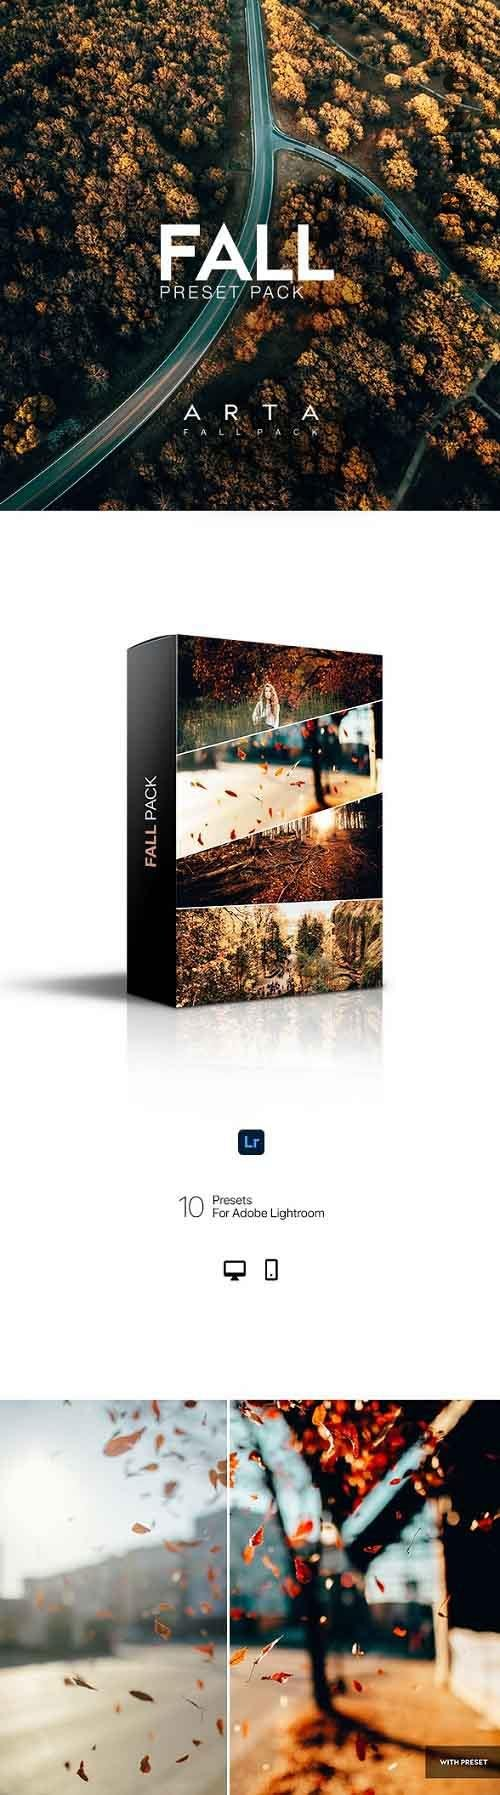 ARTA Fall Pack For Mobile and Desktop Lightroom 28906487